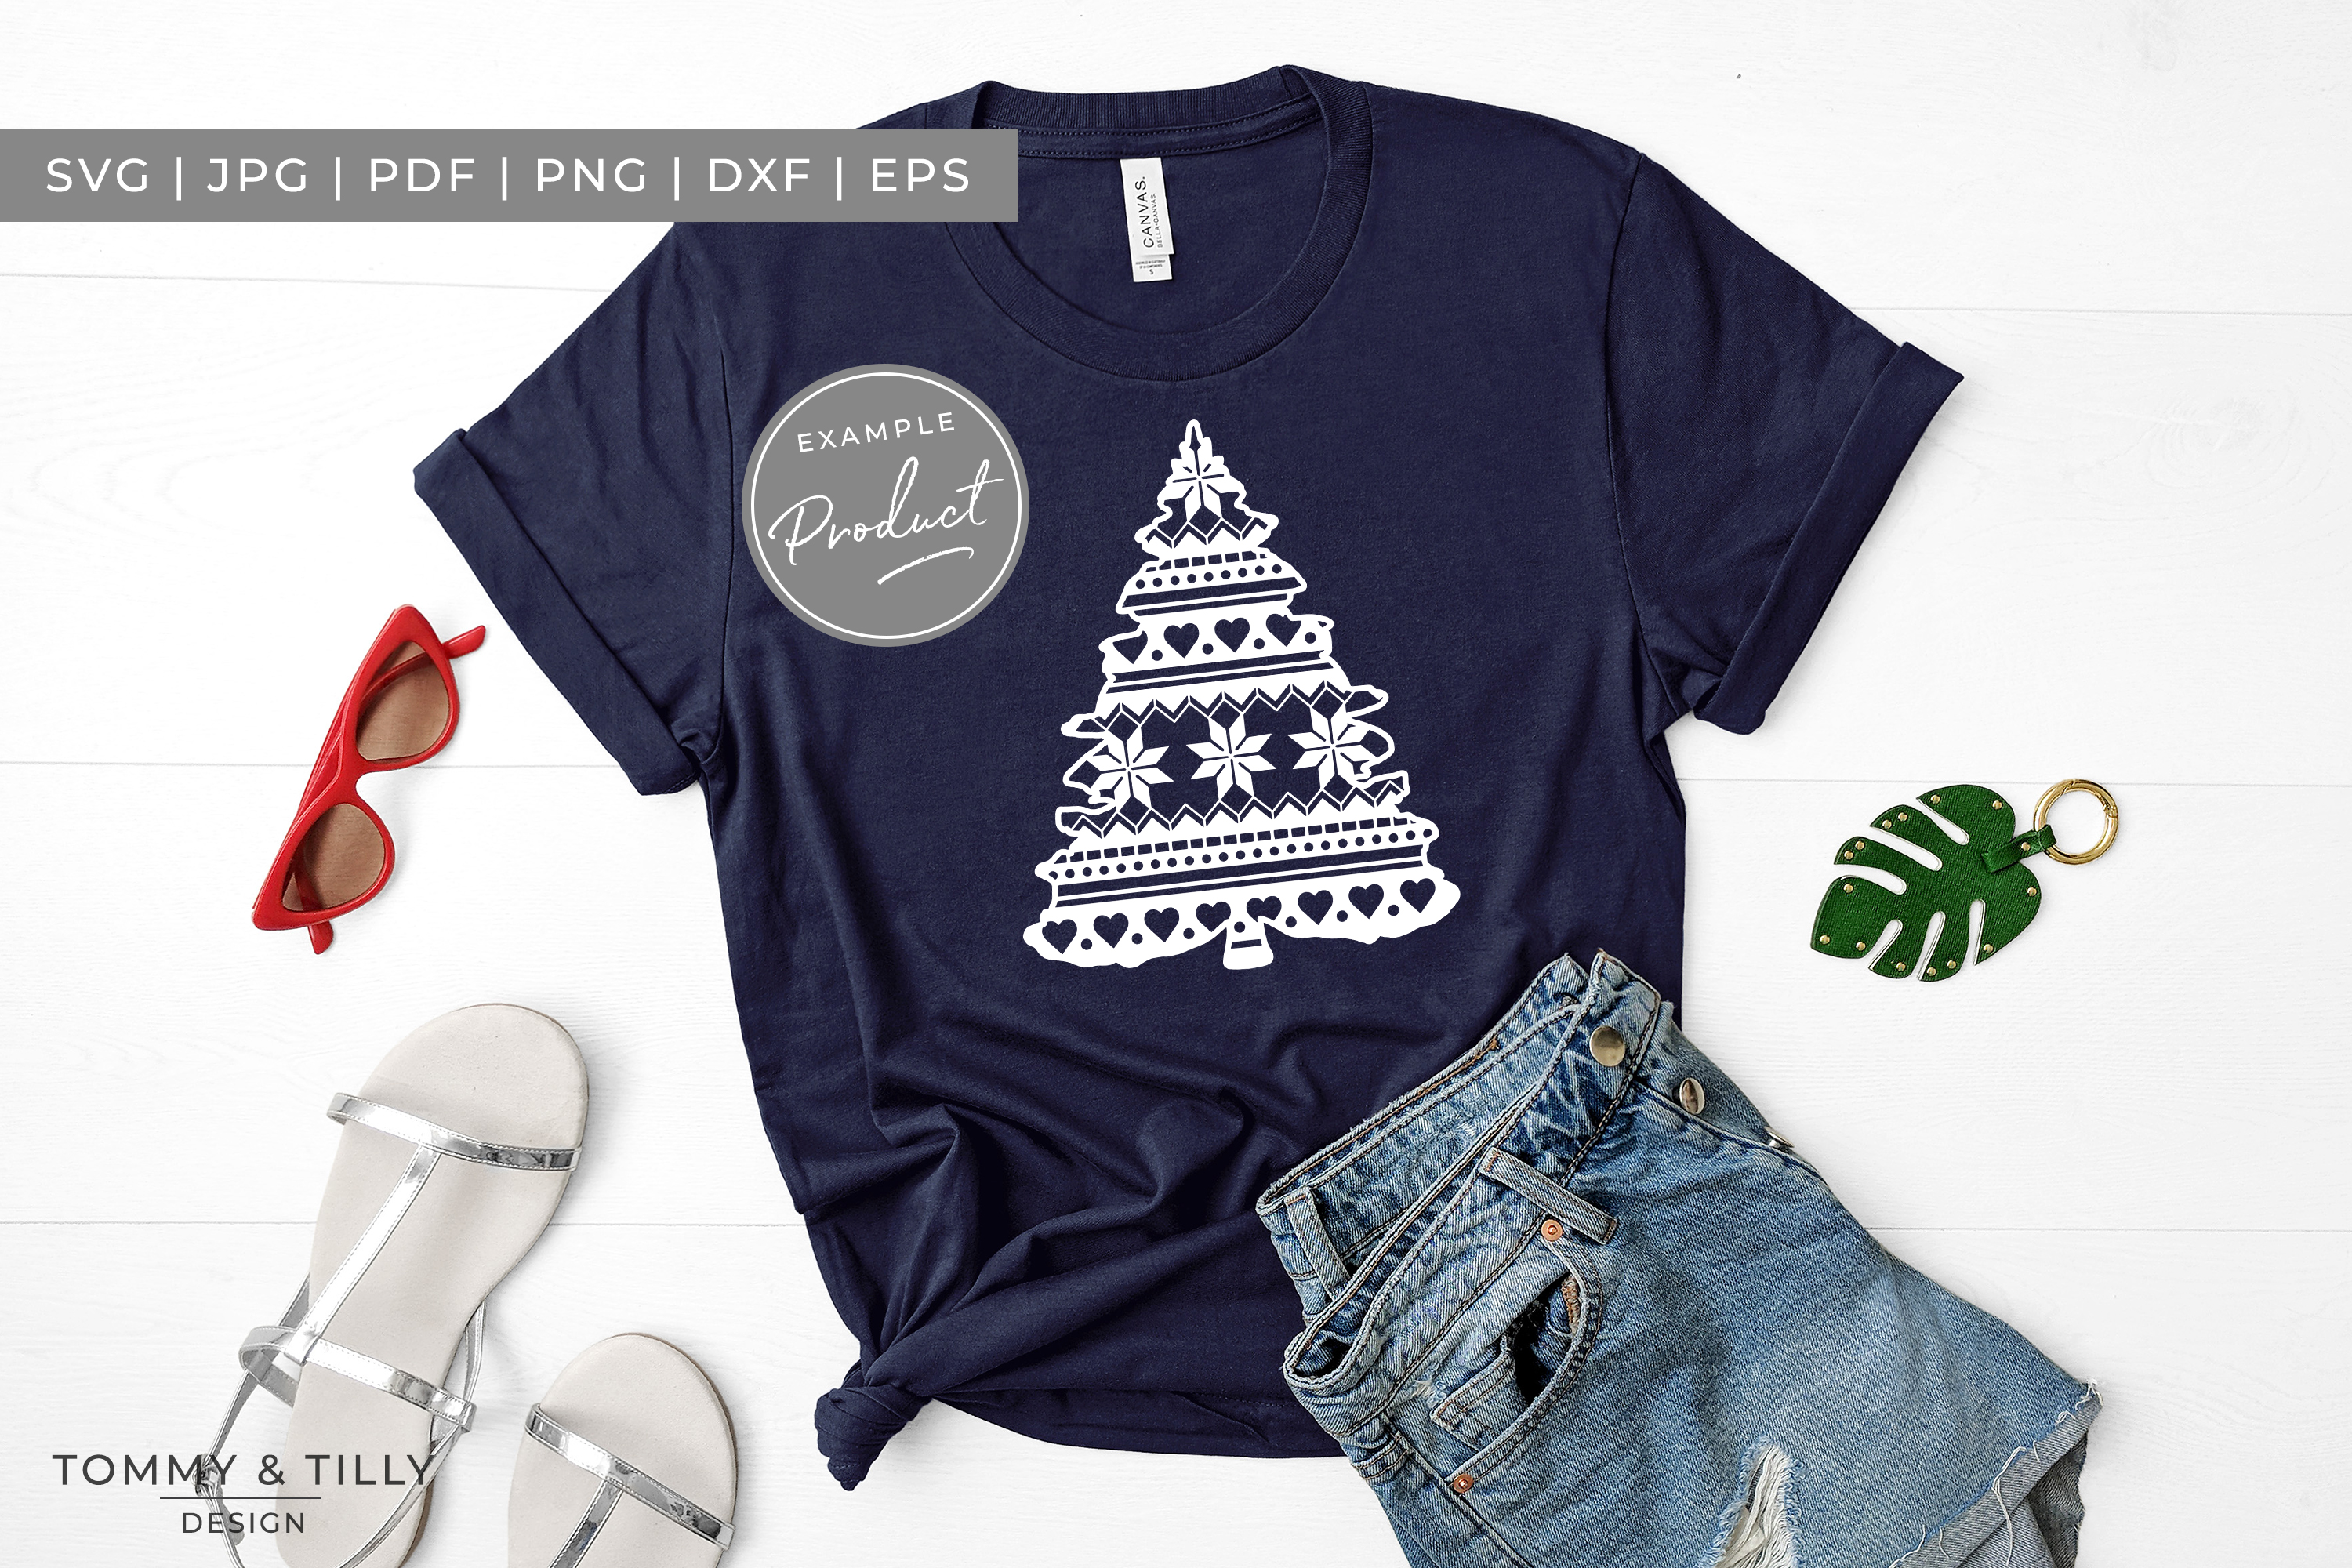 Pattern Christmas Tree - SVG EPS DXF PNG PDF JPG example image 2